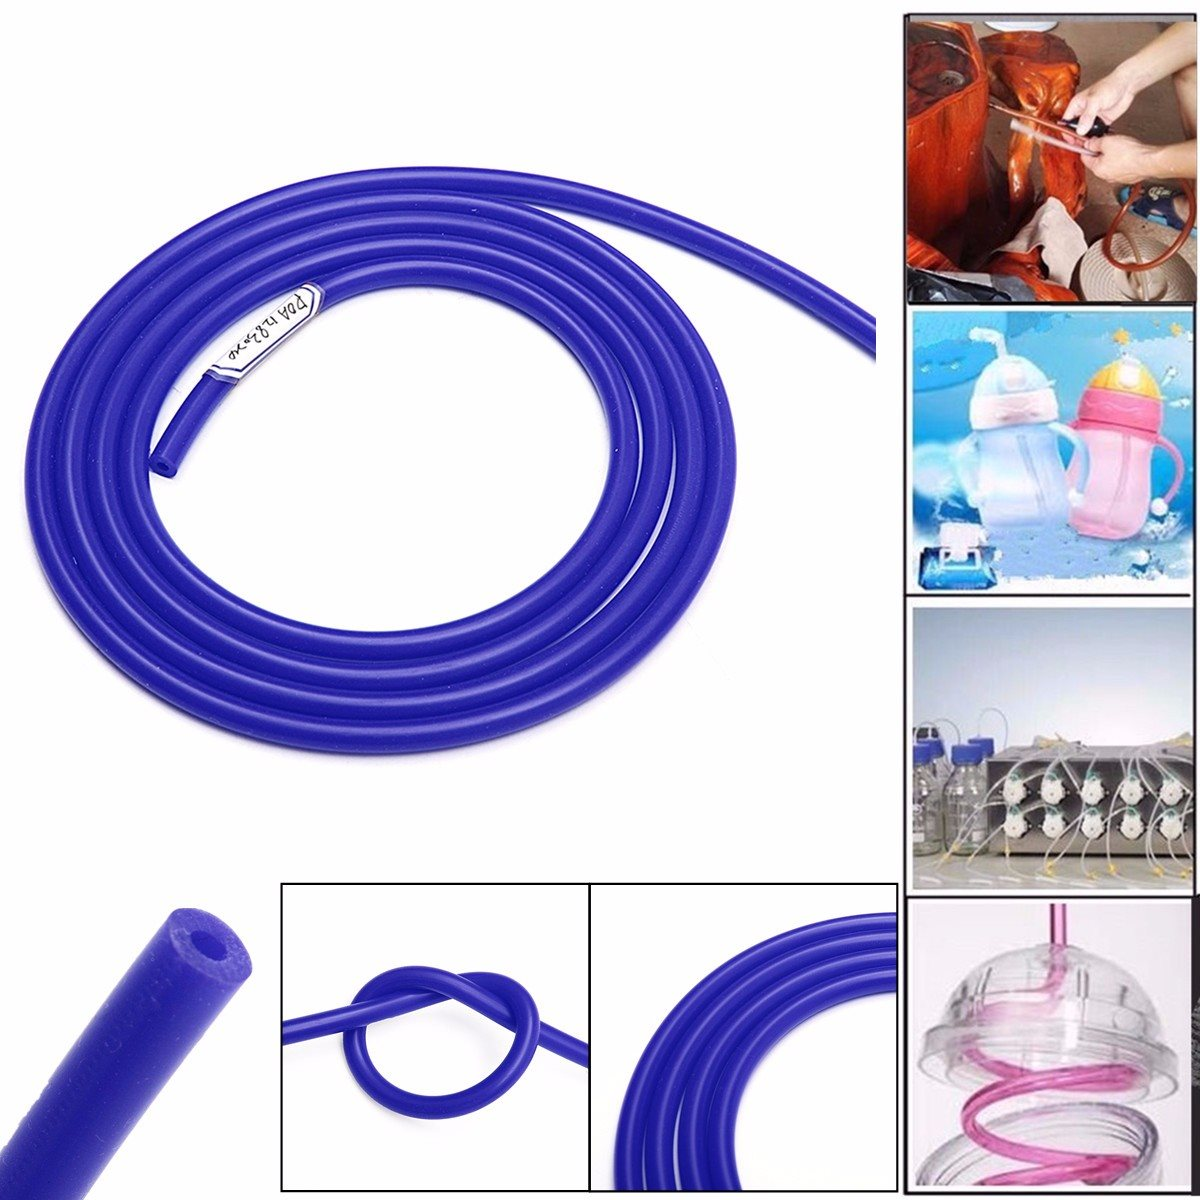 NewAge Industries 2802471 Silcon Unreinforced Silicone Tubing 3//4 100 ft OD 1//2 ID.750 Peroxide Cured.500 10 PSI